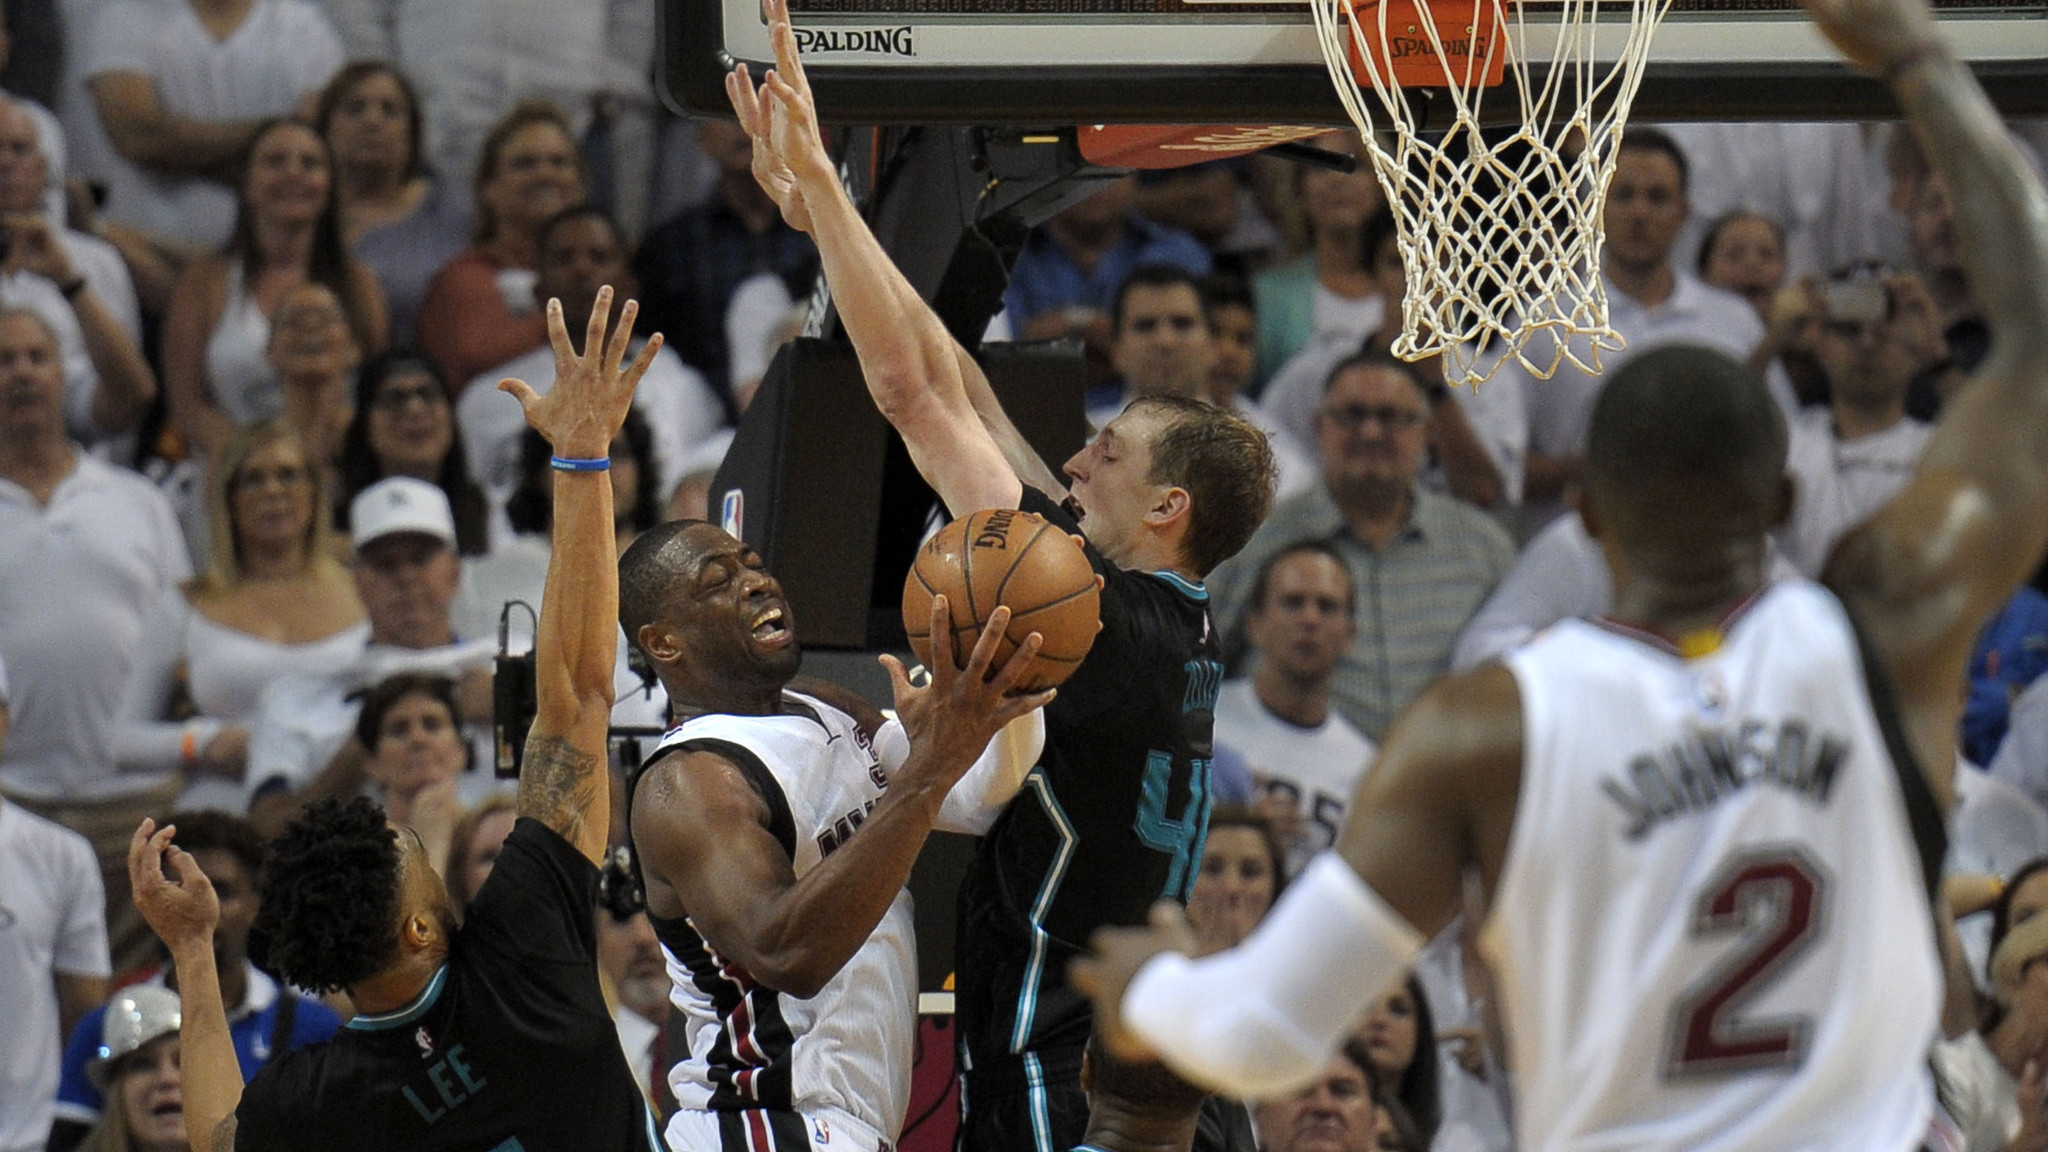 Sfl-wade-not-fouled-game-5-20160428